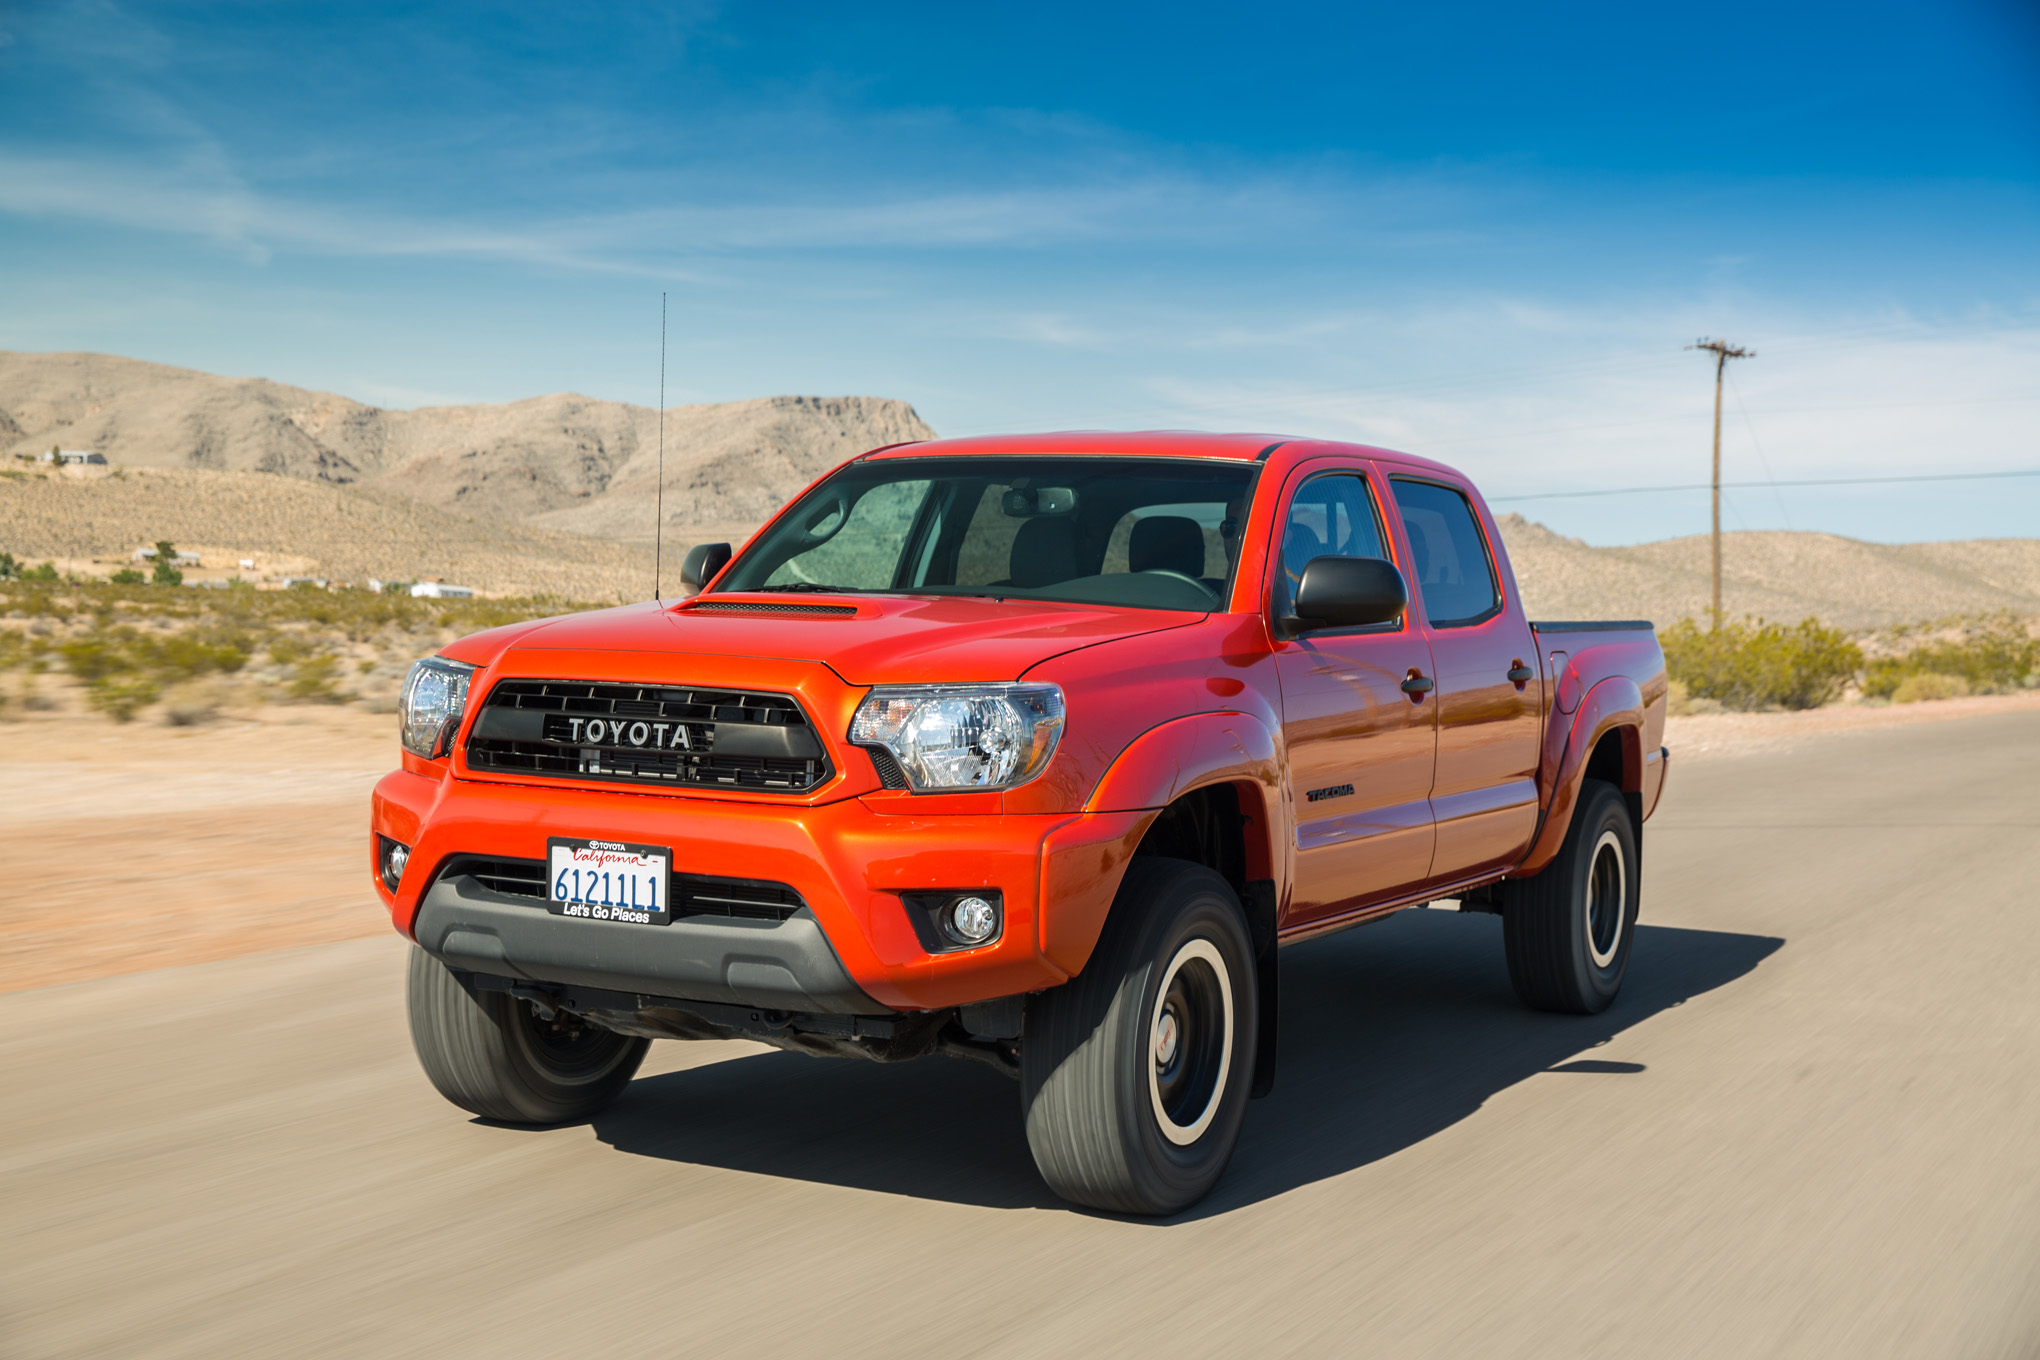 2015 Toyota Tundra 4runner Tacoma Trd Pro First Drive Motor Trend Wiring Diagram Honda Supra X 125